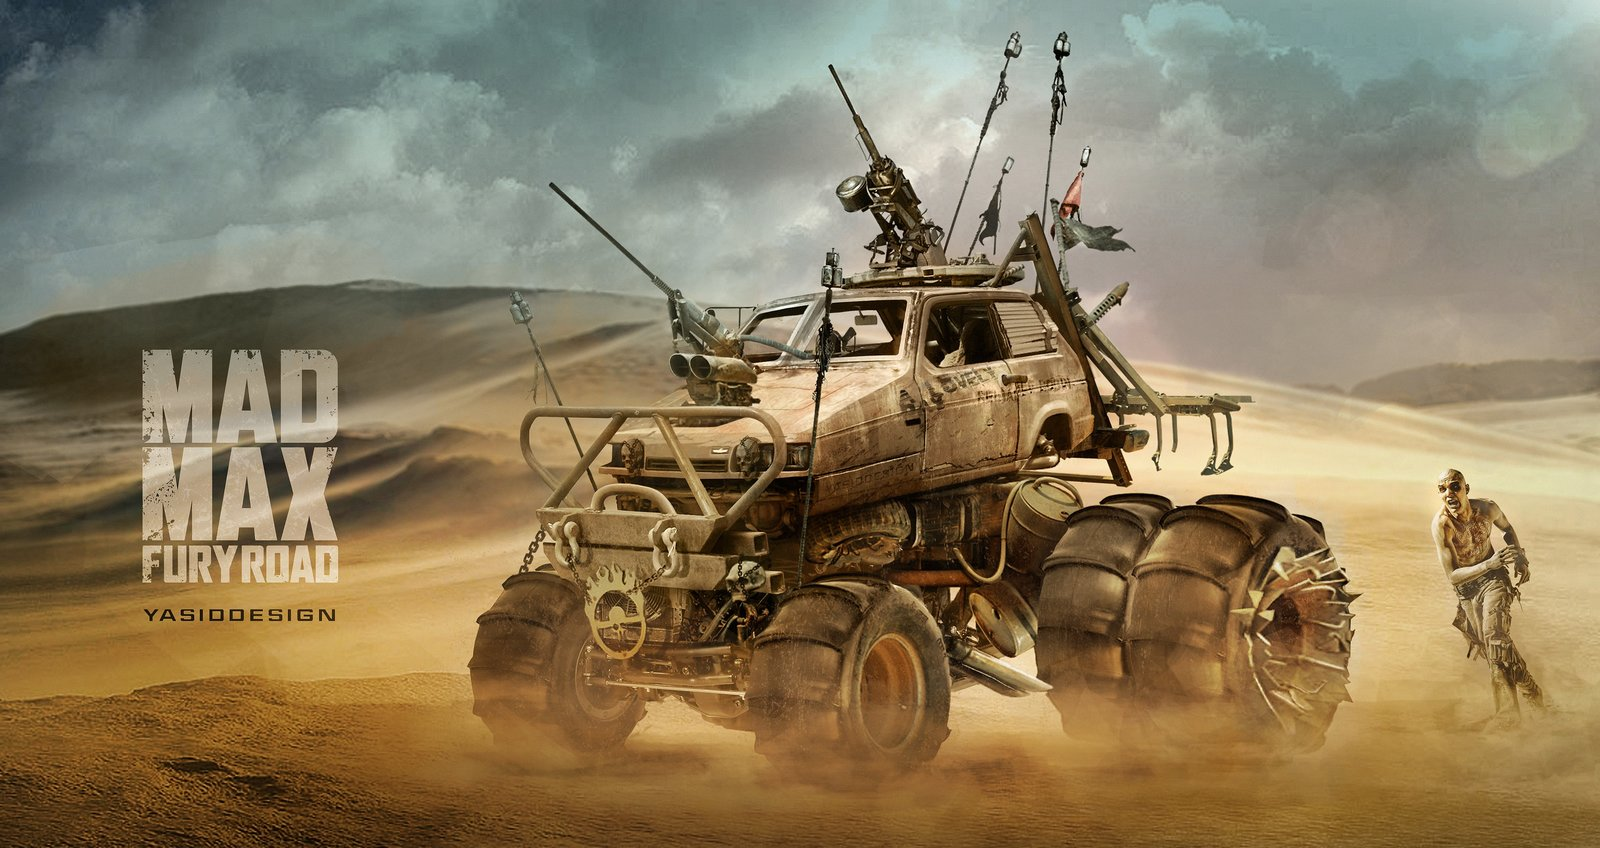 Reliant Robin _ Mad Max Fury Road